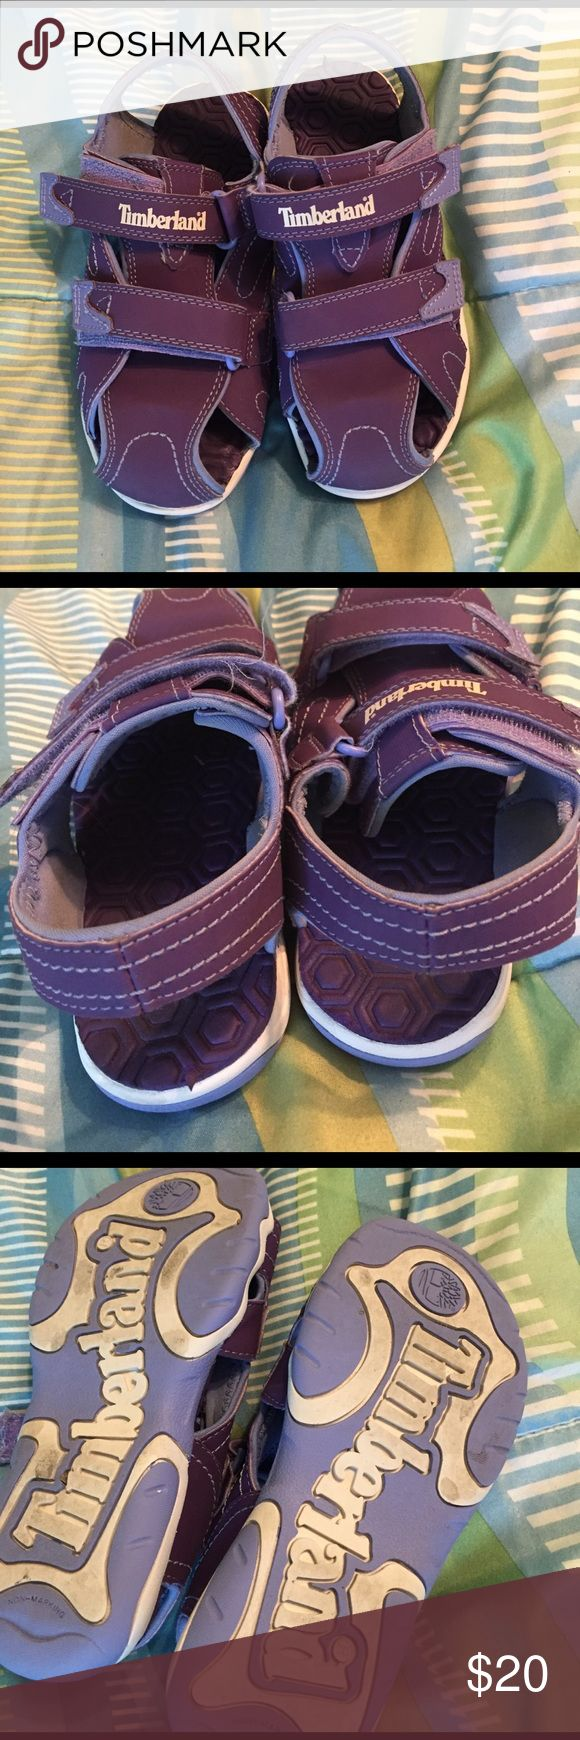 Girls Timberland water shoes Purple water shoes for girls Sz 13. Worn a few times. See all photos. Great condition Timberland Shoes Sandals & Flip Flops